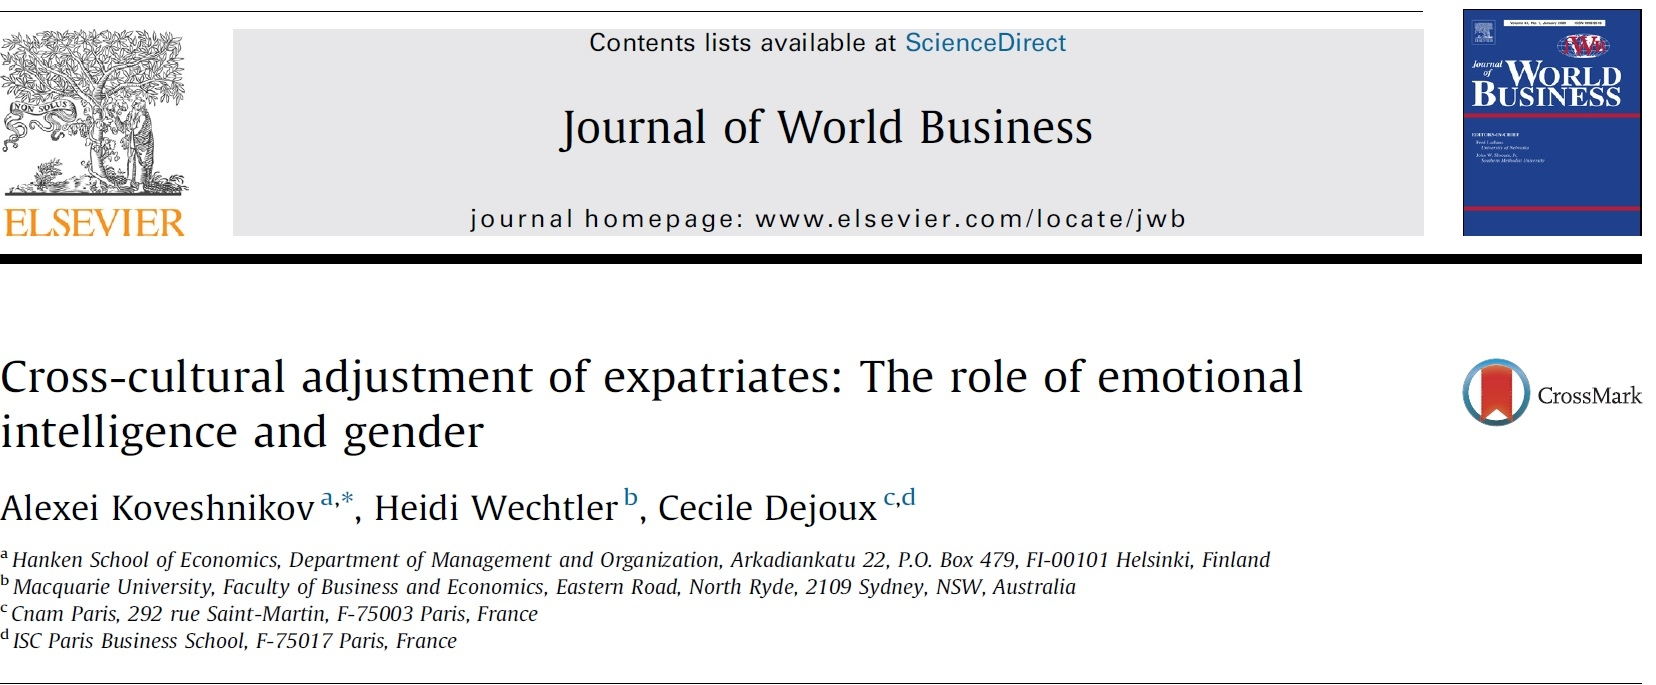 - The study examines the role of emotional intelligence (EI) in cross-cultural adjustment (CCA) of expatriates on international assignments. The study offers important practical implications for organizations concerning the identification and development of successful expatriates. (2013)